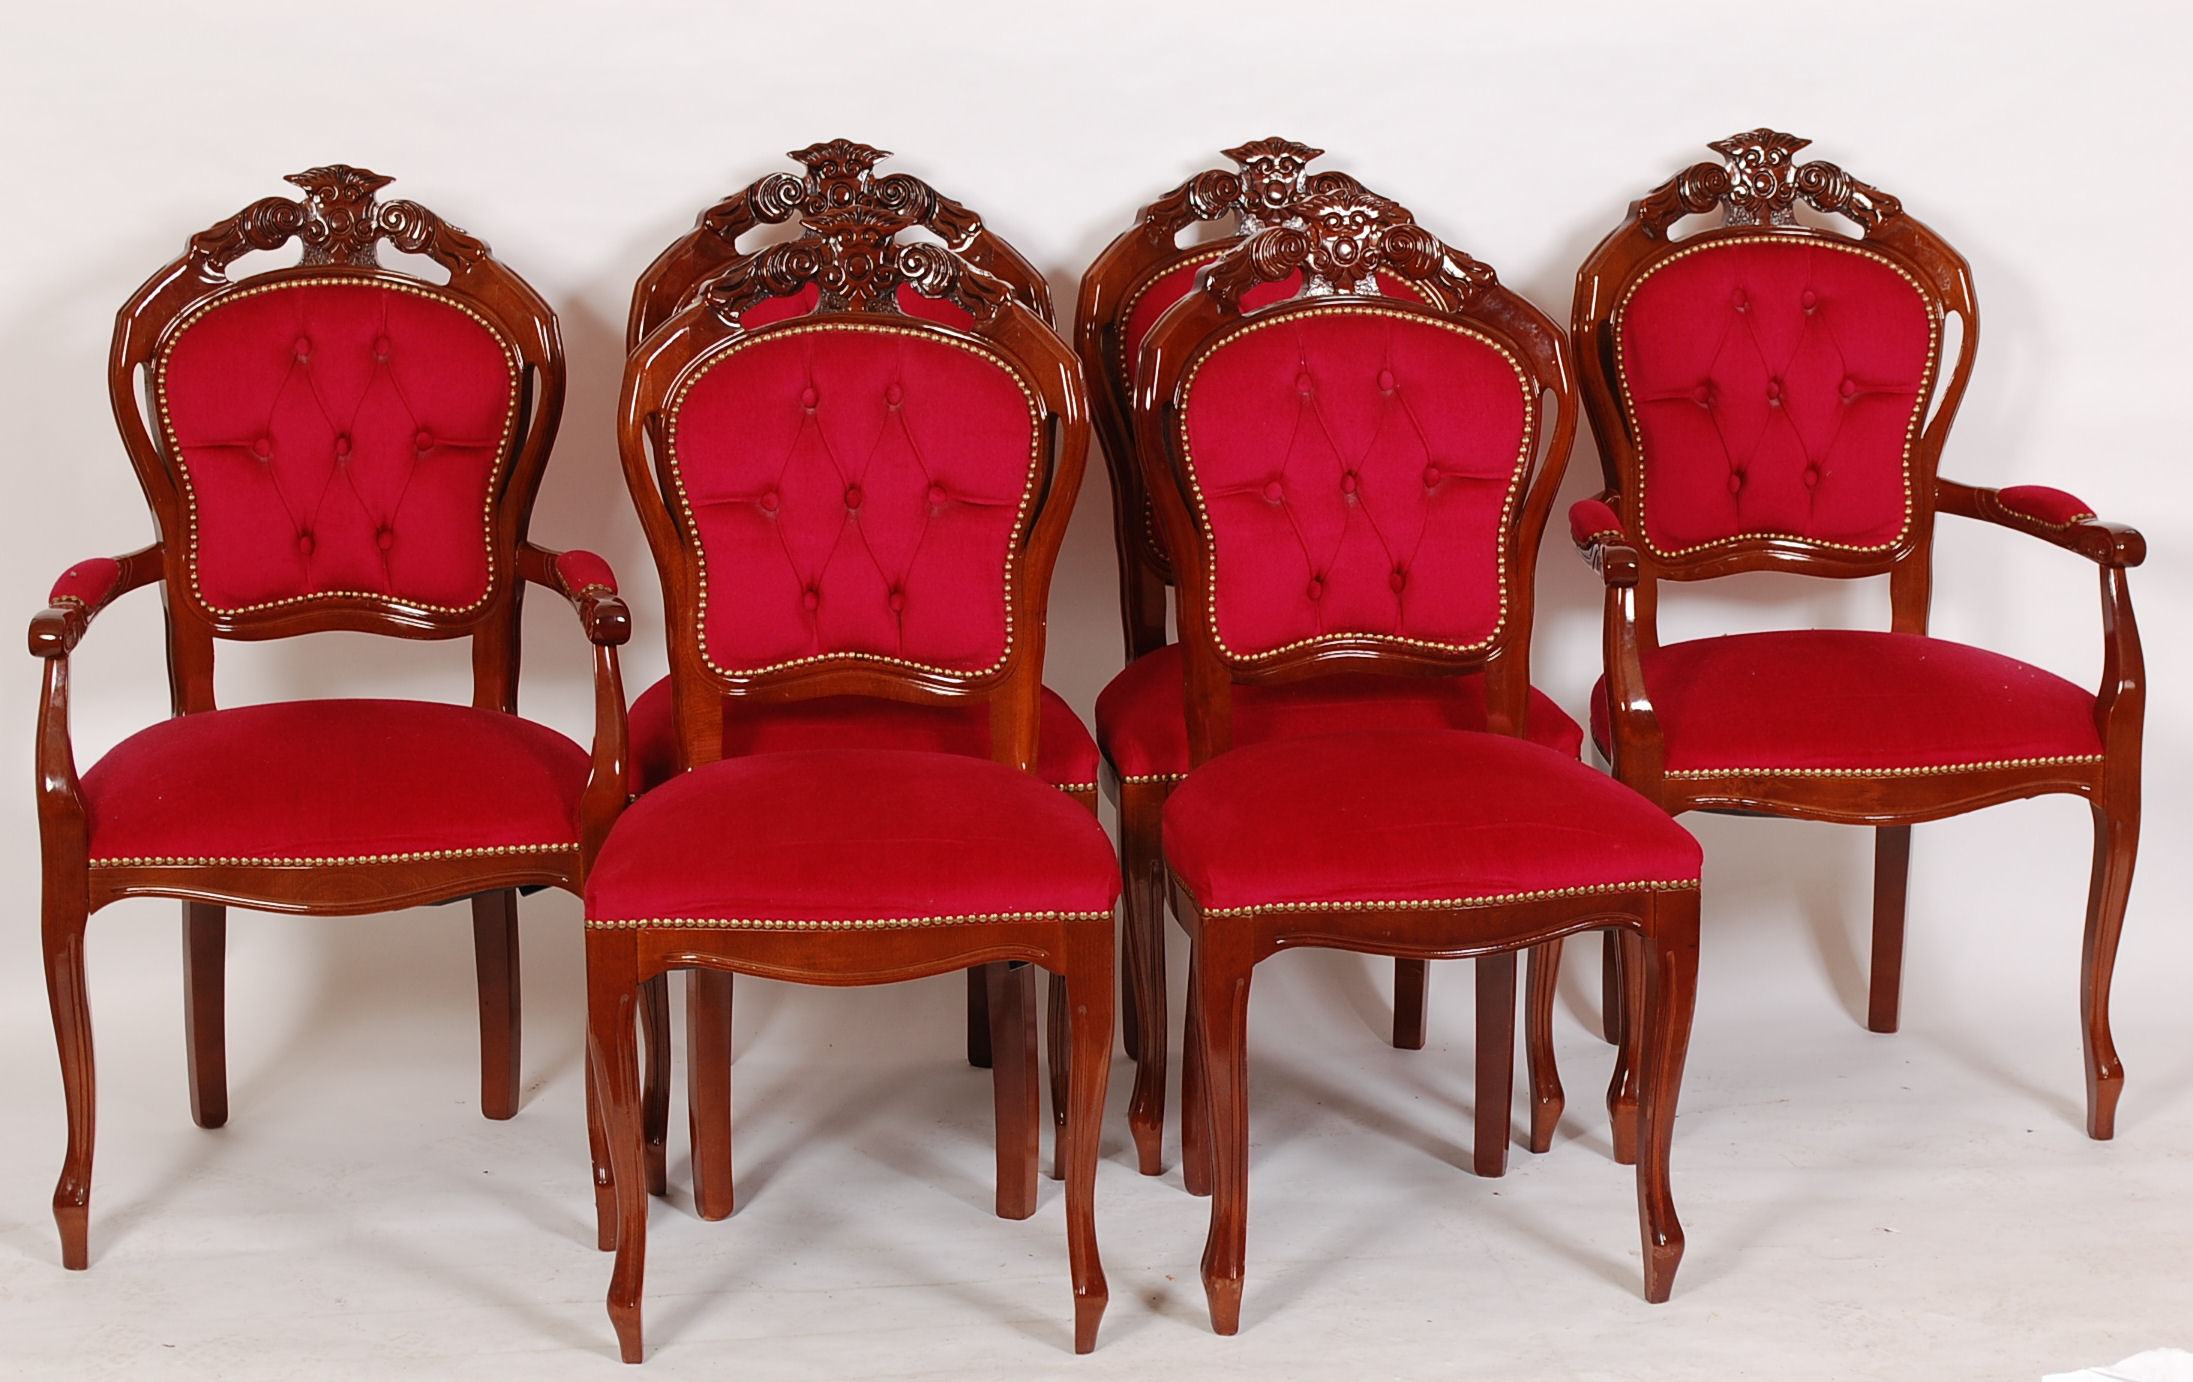 Lot 172   A set of 6 Italian Rococo dining chairs raised on shaped legs with. A set of 6 Italian Rococo dining chairs raised on shaped legs with